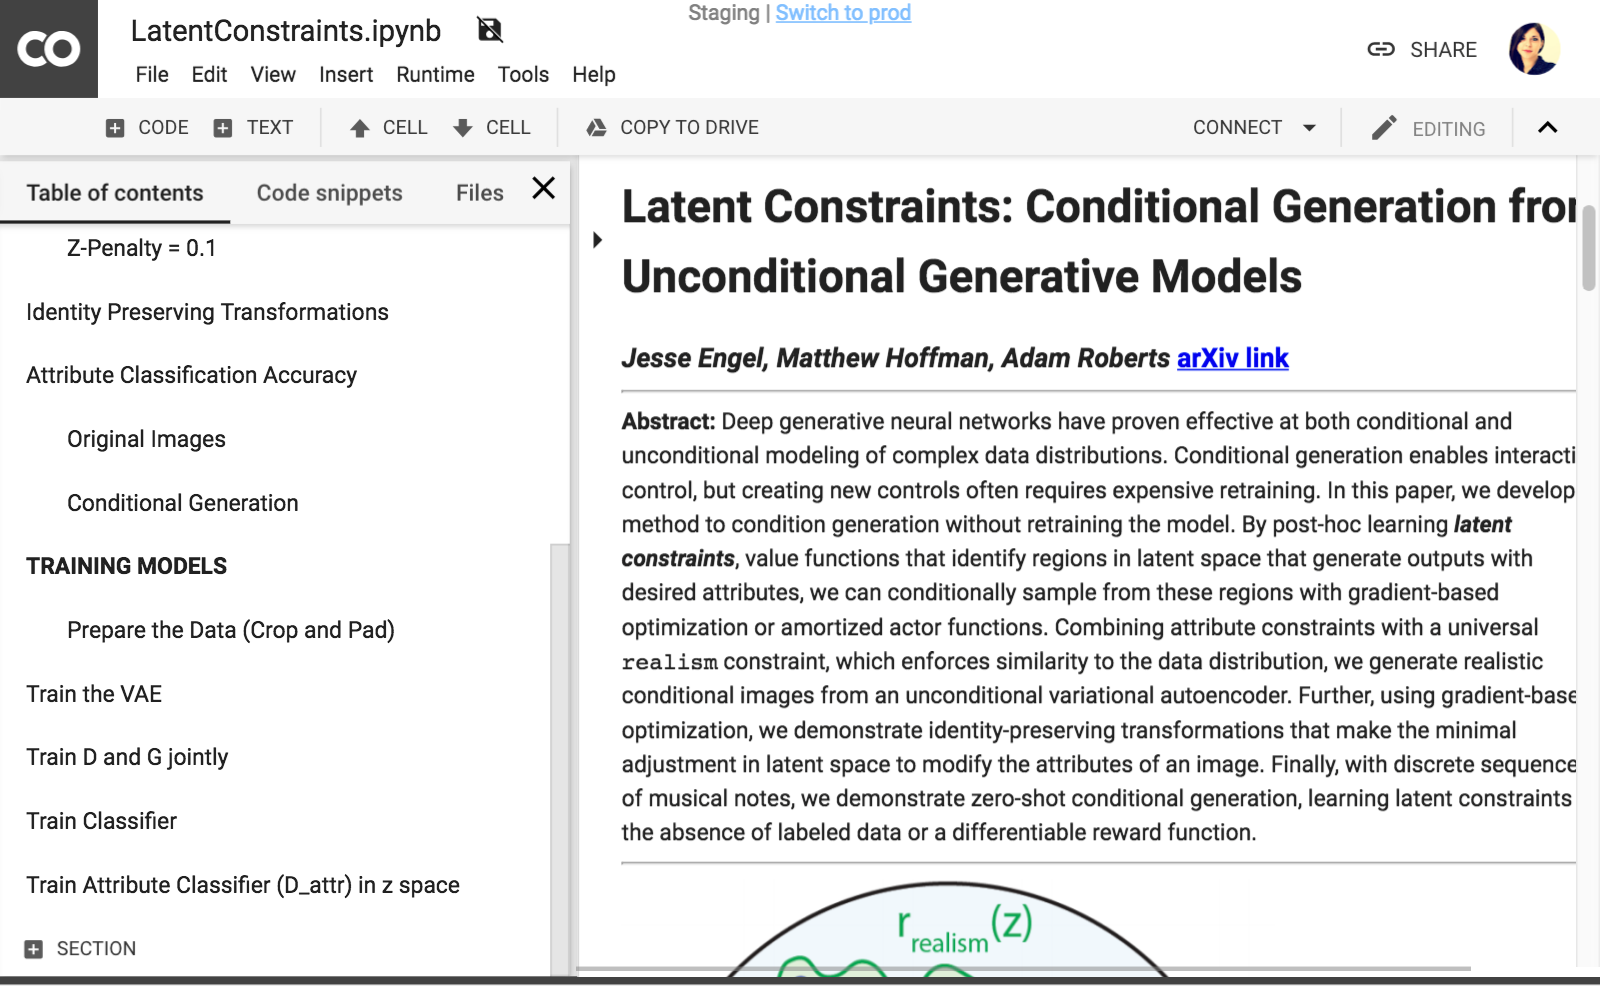 overview of Latent Constraints